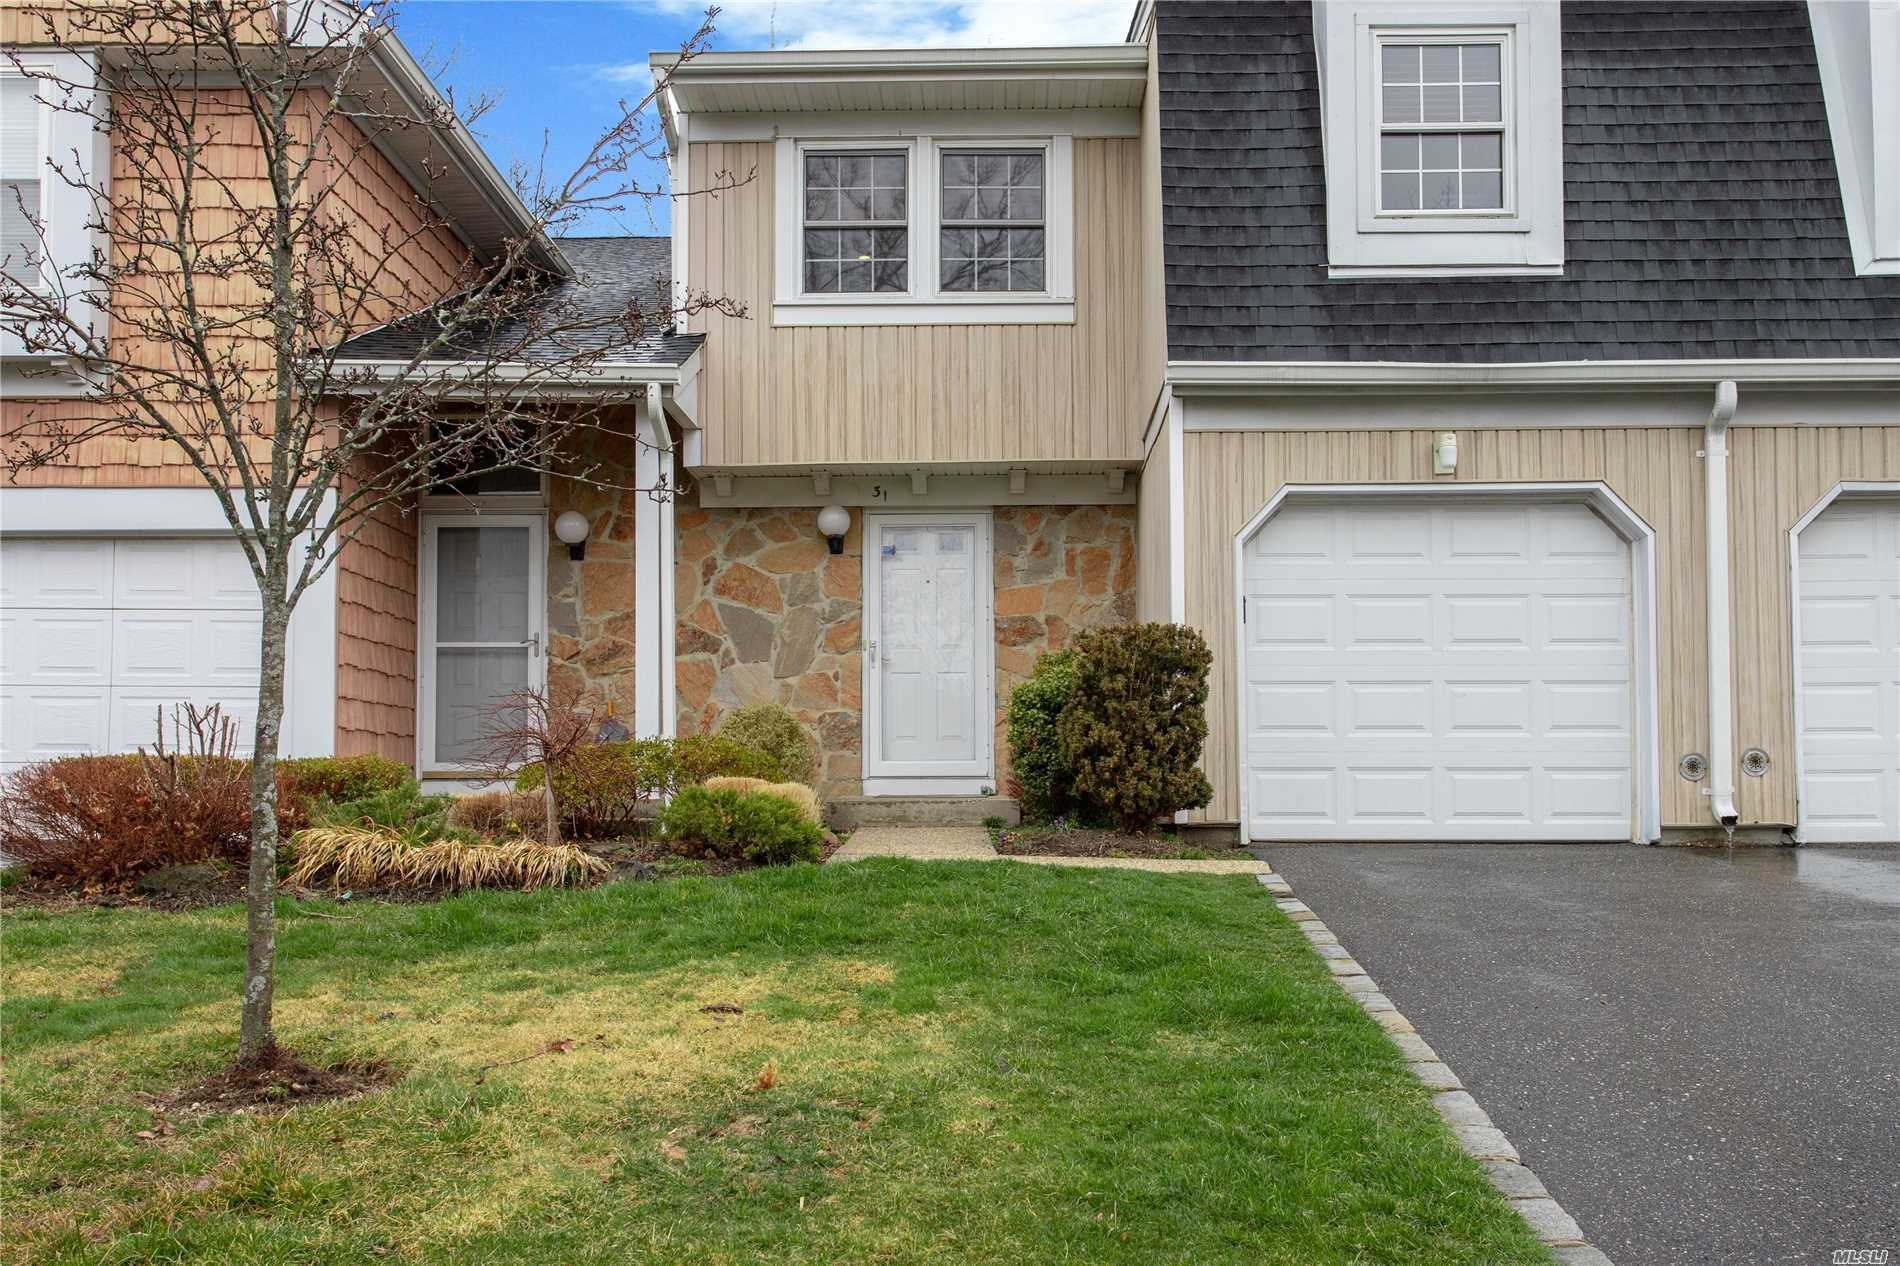 Euro EIK w/ Granite, NW refrig, and custom pull outs. Large Master BR, 2 wlk in closets W/ NW En-suite Bathroom. Upstairs Bonus rm w/ closet & Jack-Jill FULL bath to 2nd large BR + office. Formal DR and LR w/ updated built in unit/Fireplace. NW heated fin basement w/ theater, game rm, workout rm & huge storage closet. New: NEST Thermostat, CAC, HWH & Roof - Sliders Off Kitchen To NW over-sized Trek Deck overlooking a beautiful property on the BEST location of greenbelt. A Must See!